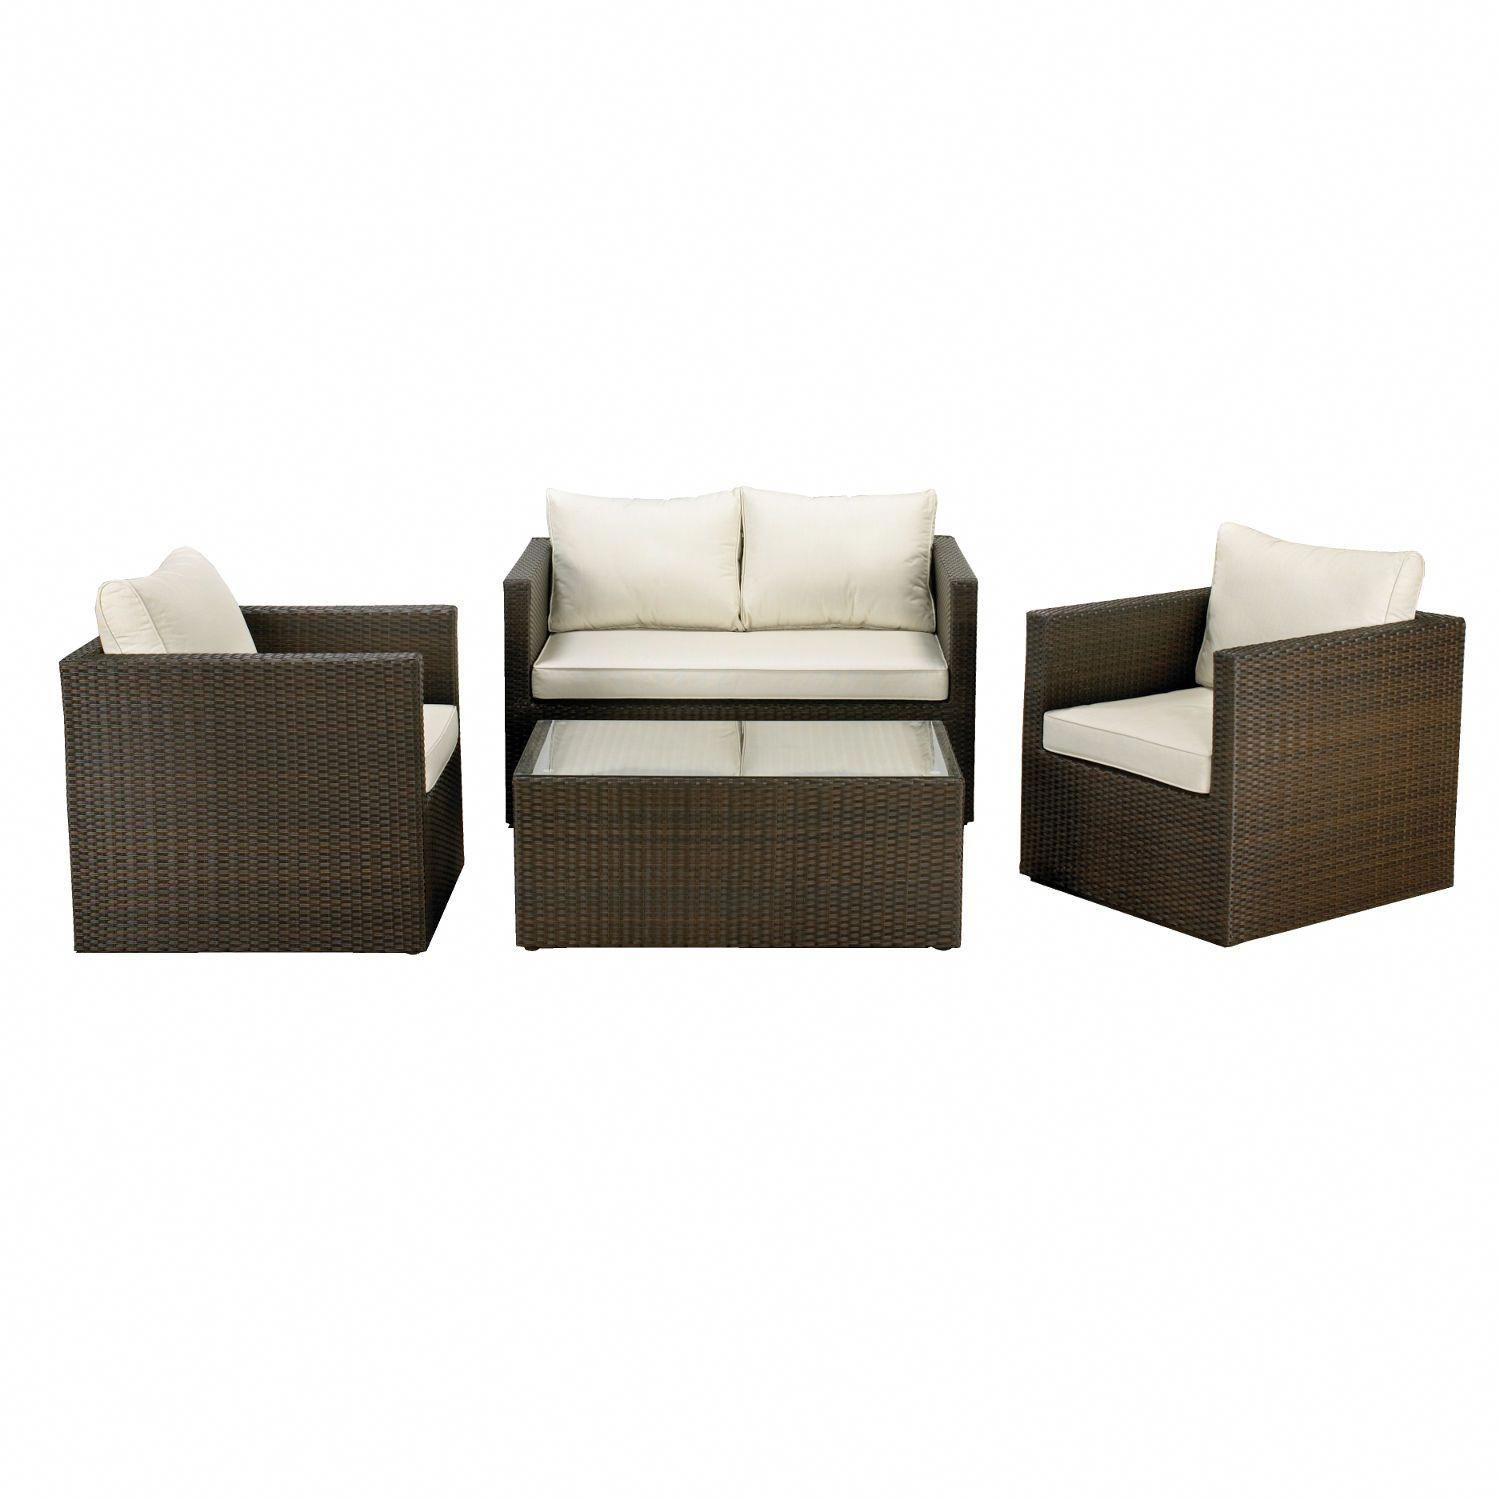 Cannes Deluxe 4 Seater Sofa Set The Uk S No 1 Garden Furniture